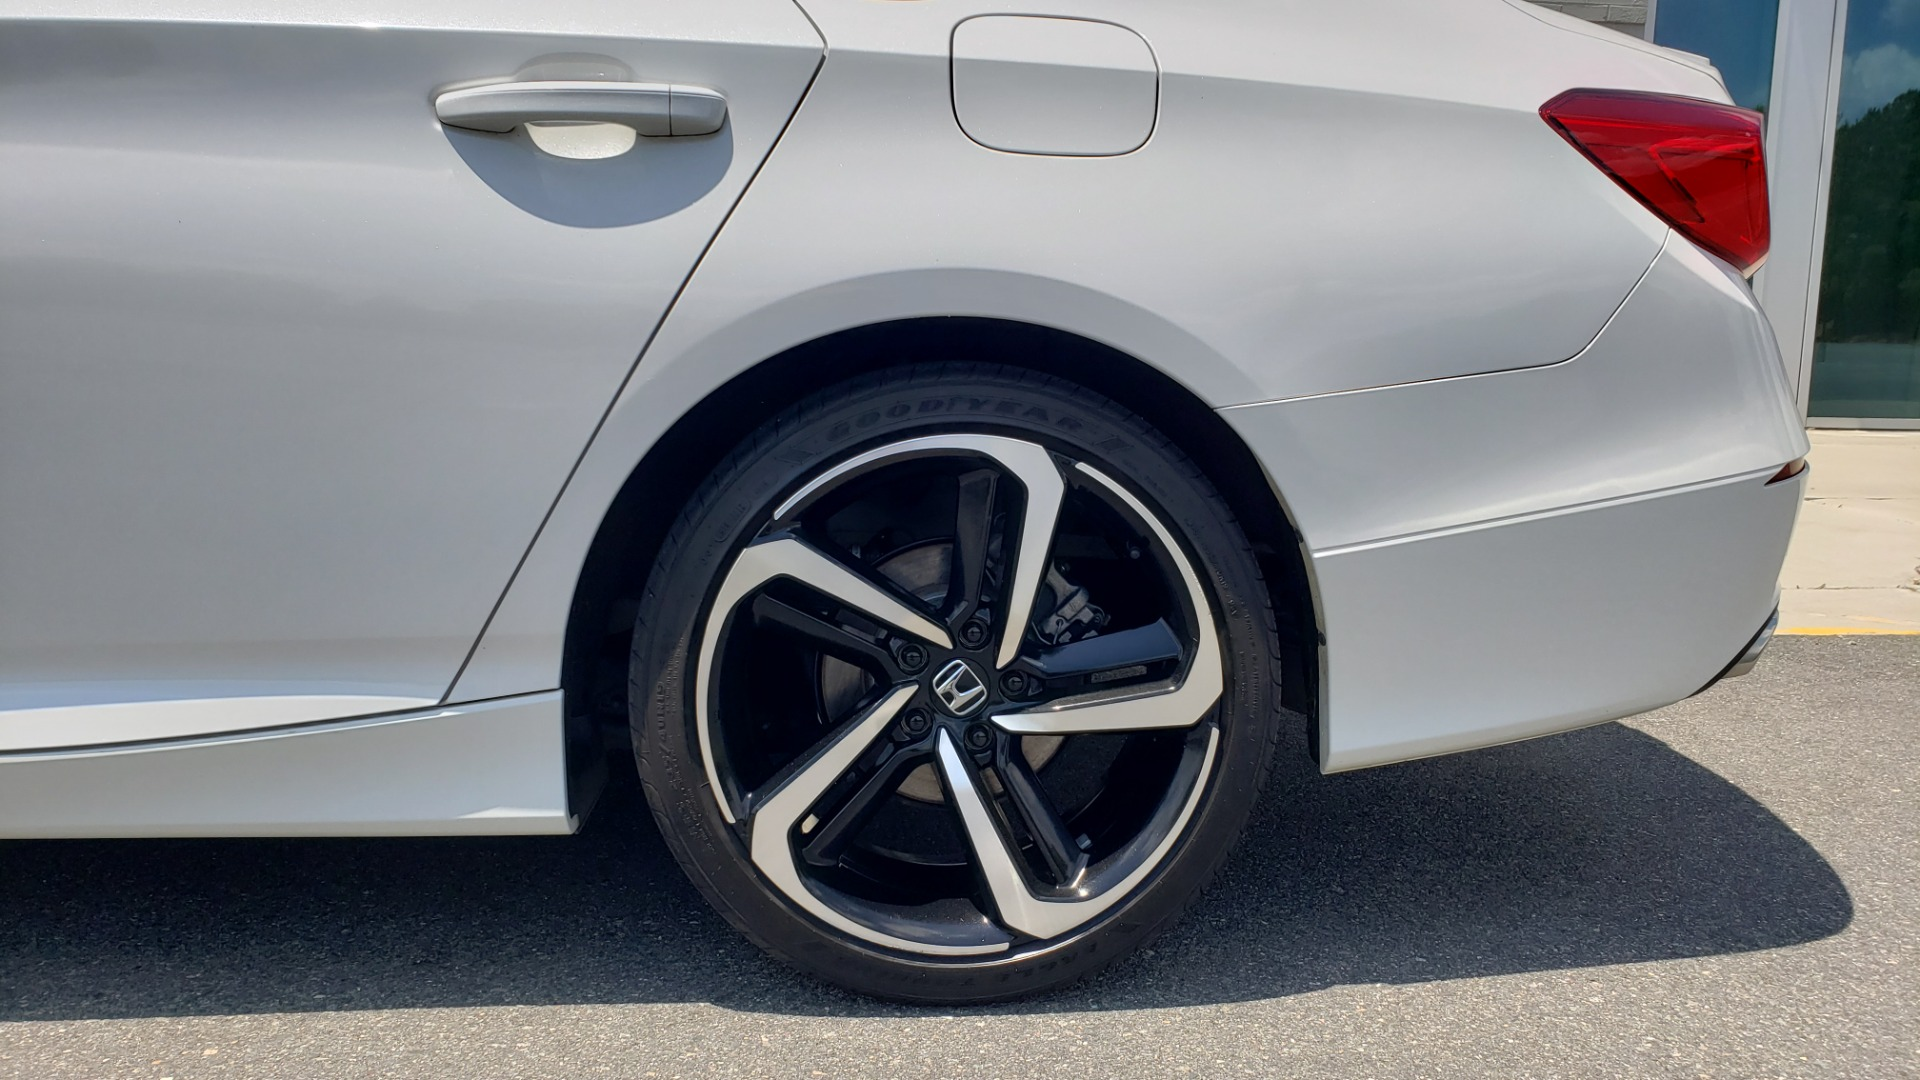 Used 2018 Honda ACCORD SEDAN SPORT 1.5T / CVT TRANS / FWD / 19IN WHEELS for sale $20,995 at Formula Imports in Charlotte NC 28227 67